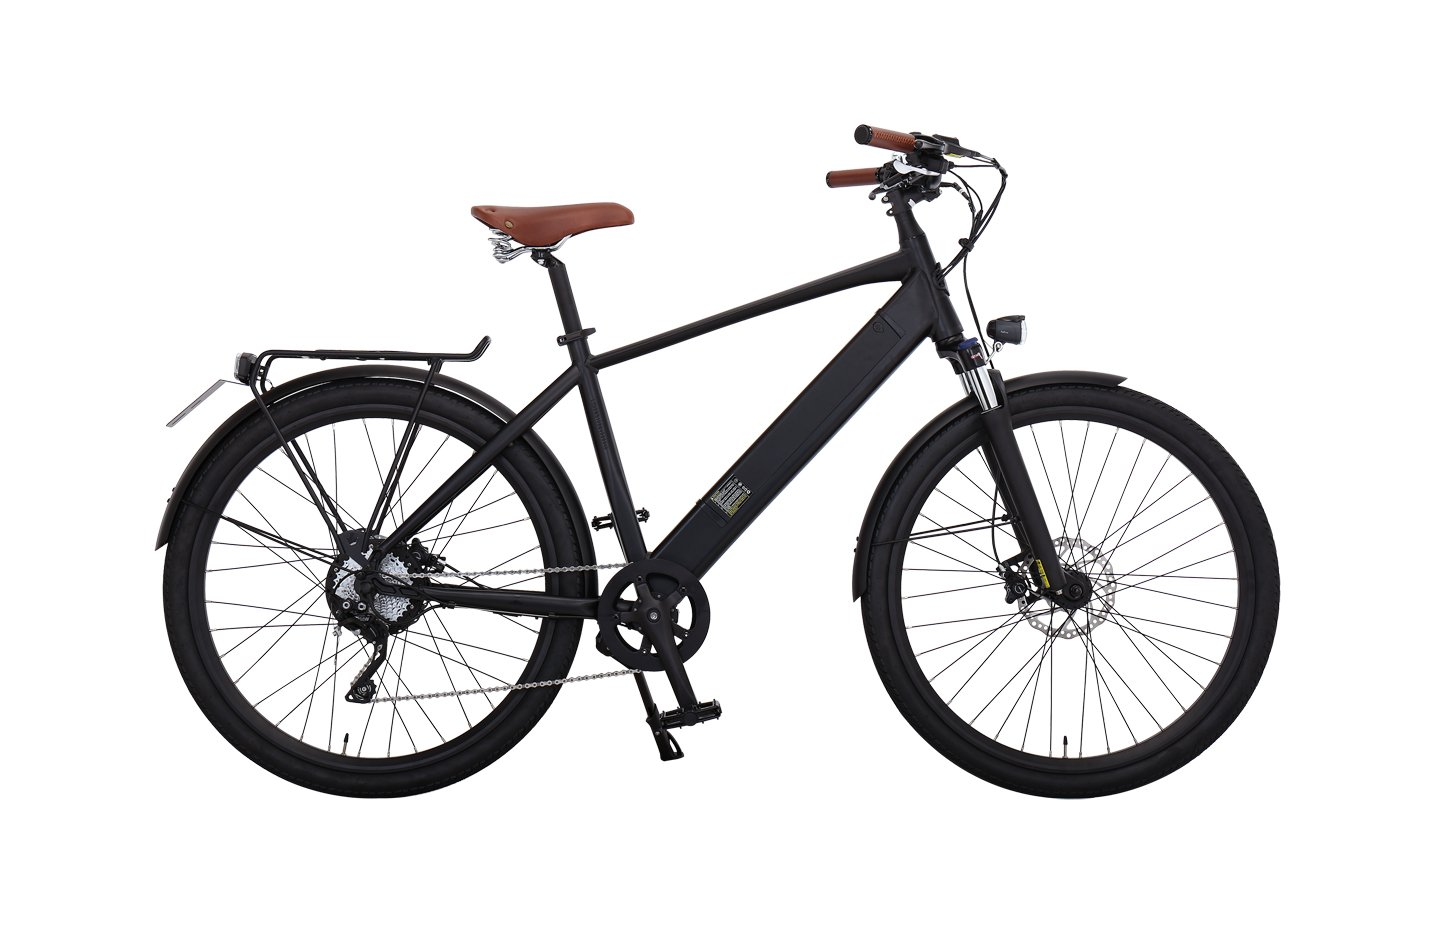 ego-movement-e-bike-schweiz-design-black-jack-sbgt-5